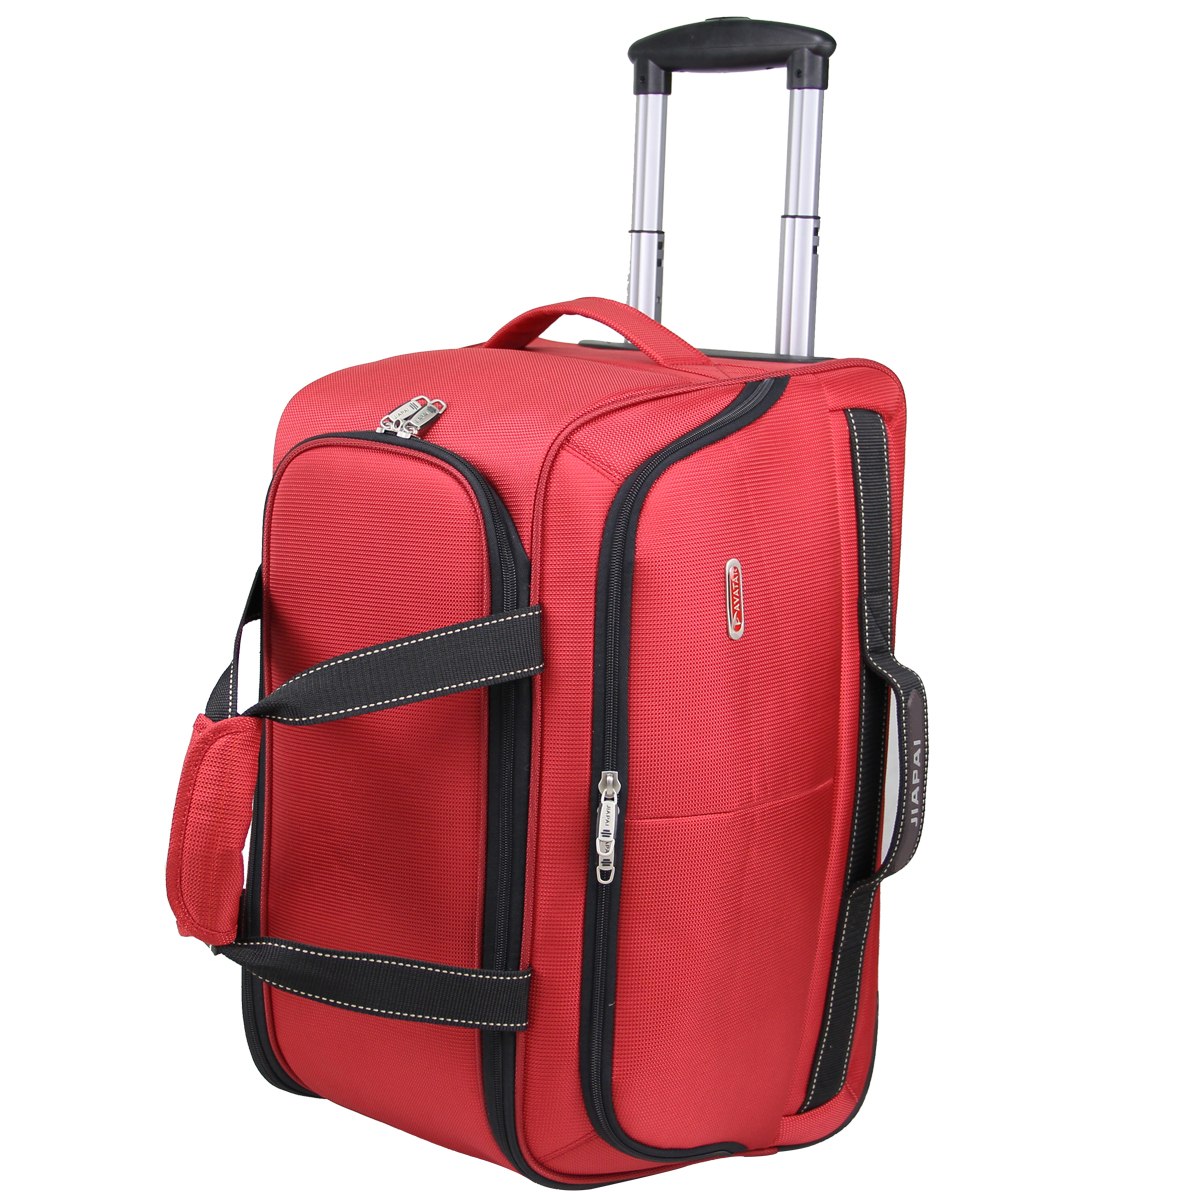 bag-travel-bag-20-trolley-bag-trolley-luggage-from-reliable-luggage